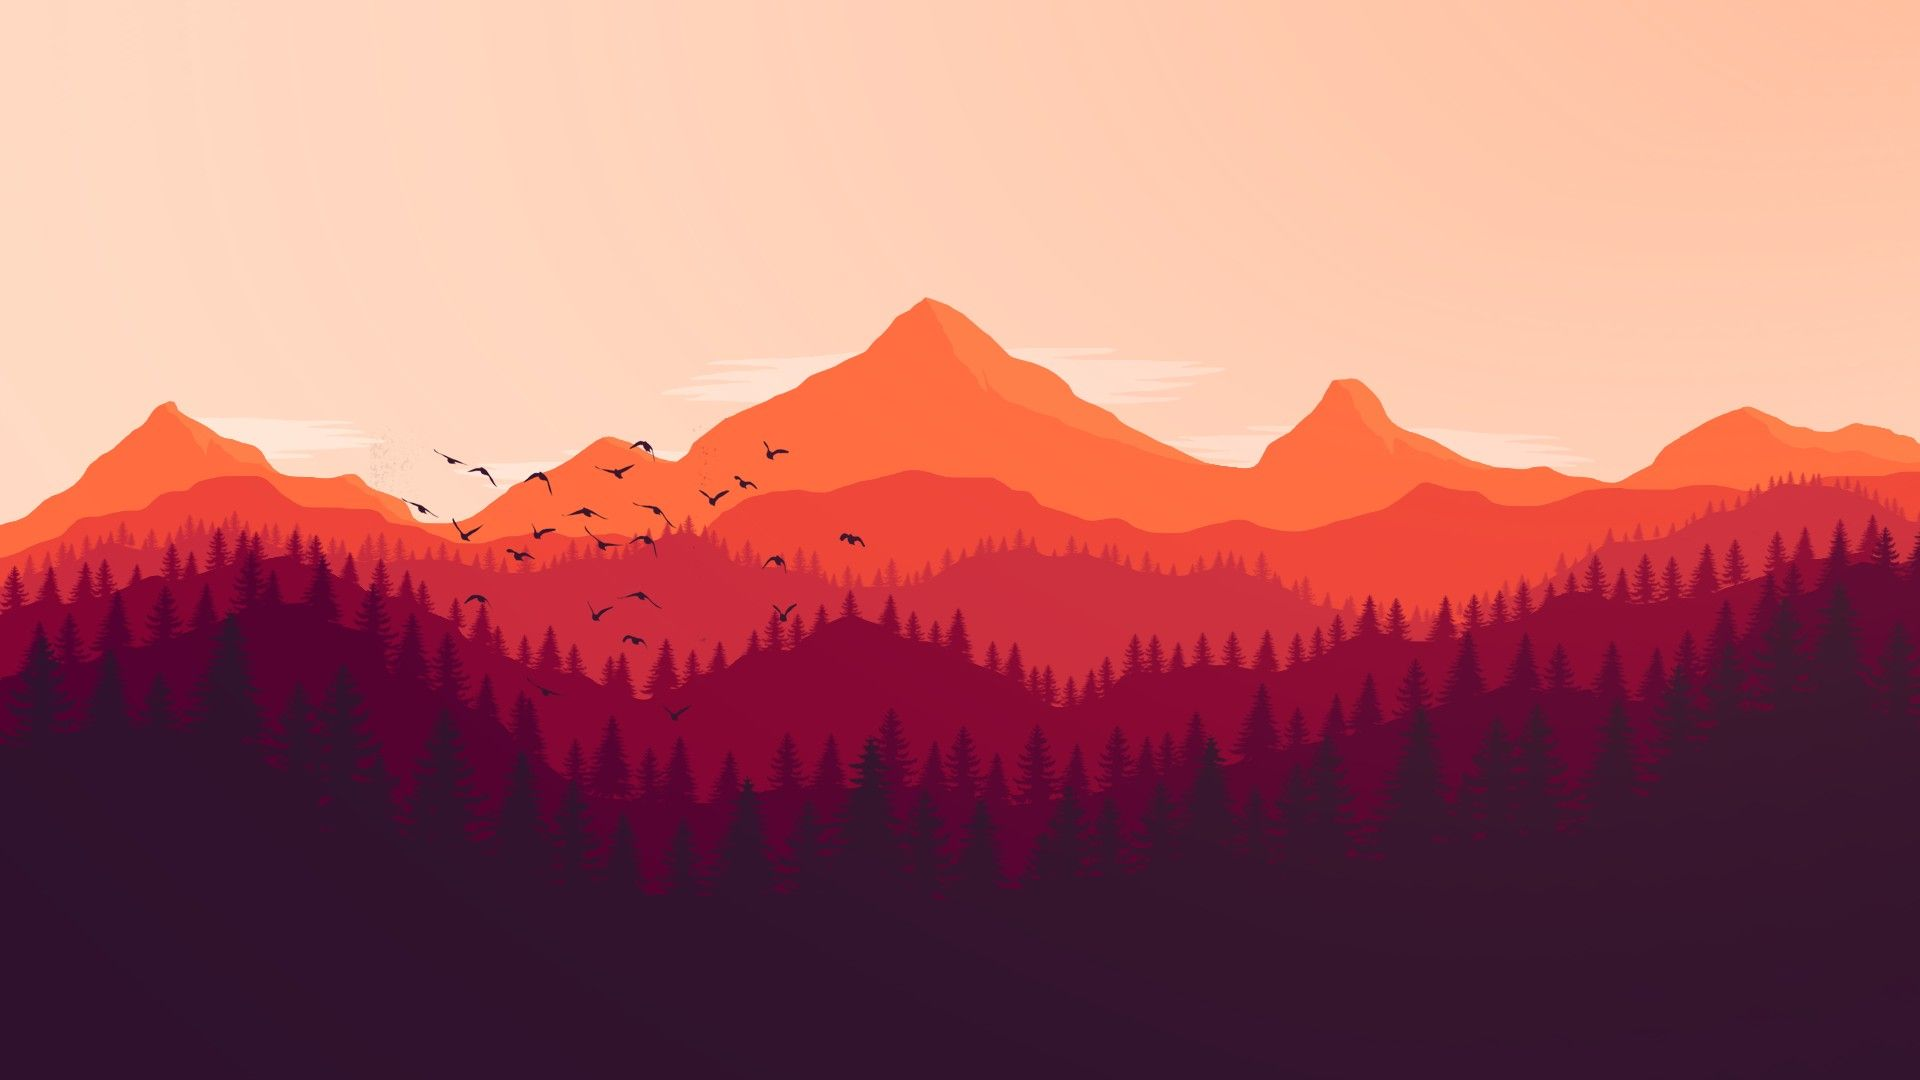 Firewatch Wallpapers For Iphone For Widescreen Wallpaper On Flowerswallpaper Info If You Like It Iphone A In 2020 Firewatch Logo Wallpaper Hd Game Wallpaper Iphone